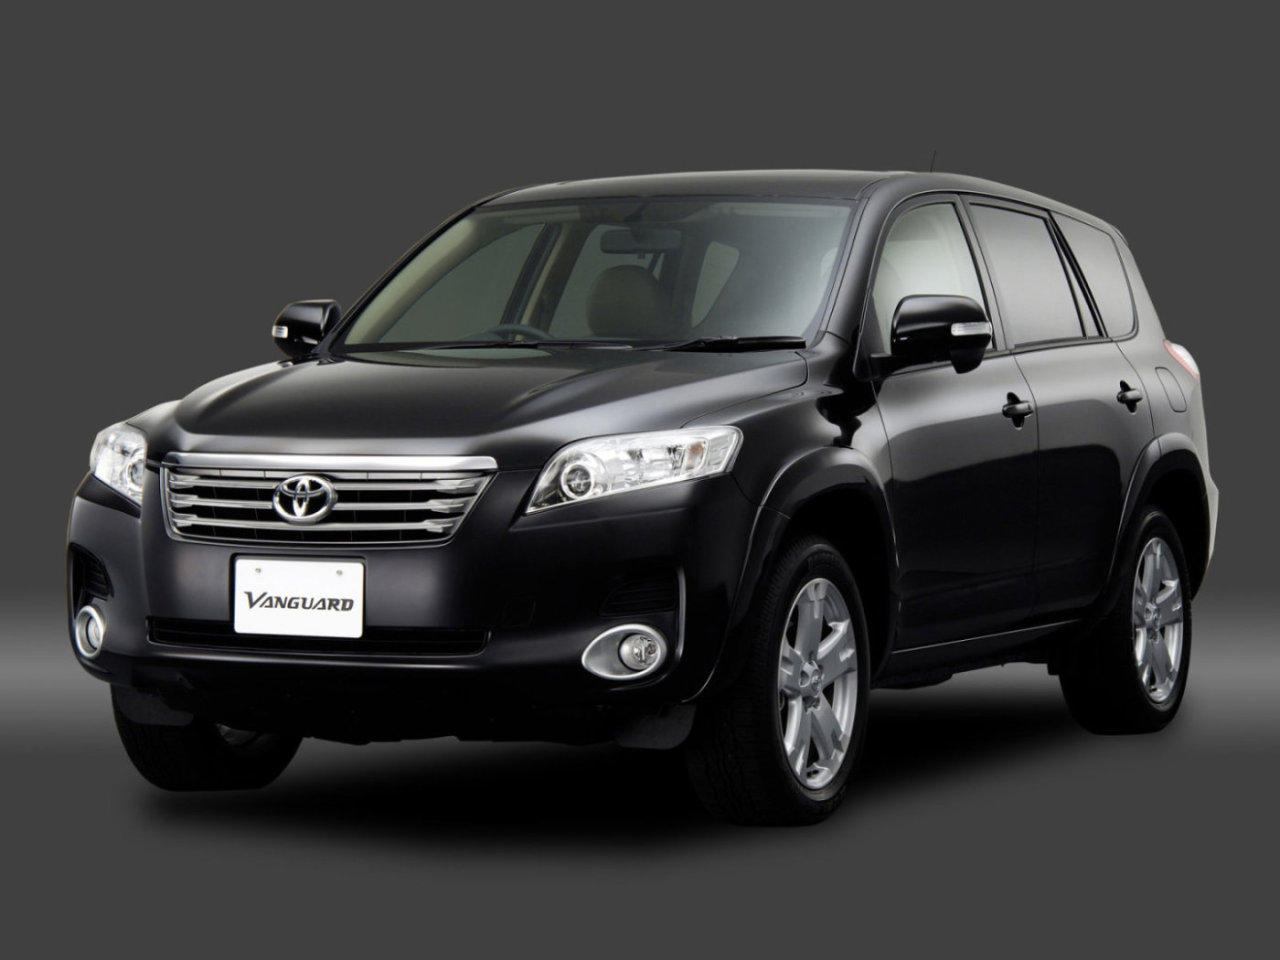 TOYOTA Vanguard car technical data. Car specifications. Vehicle fuel ...